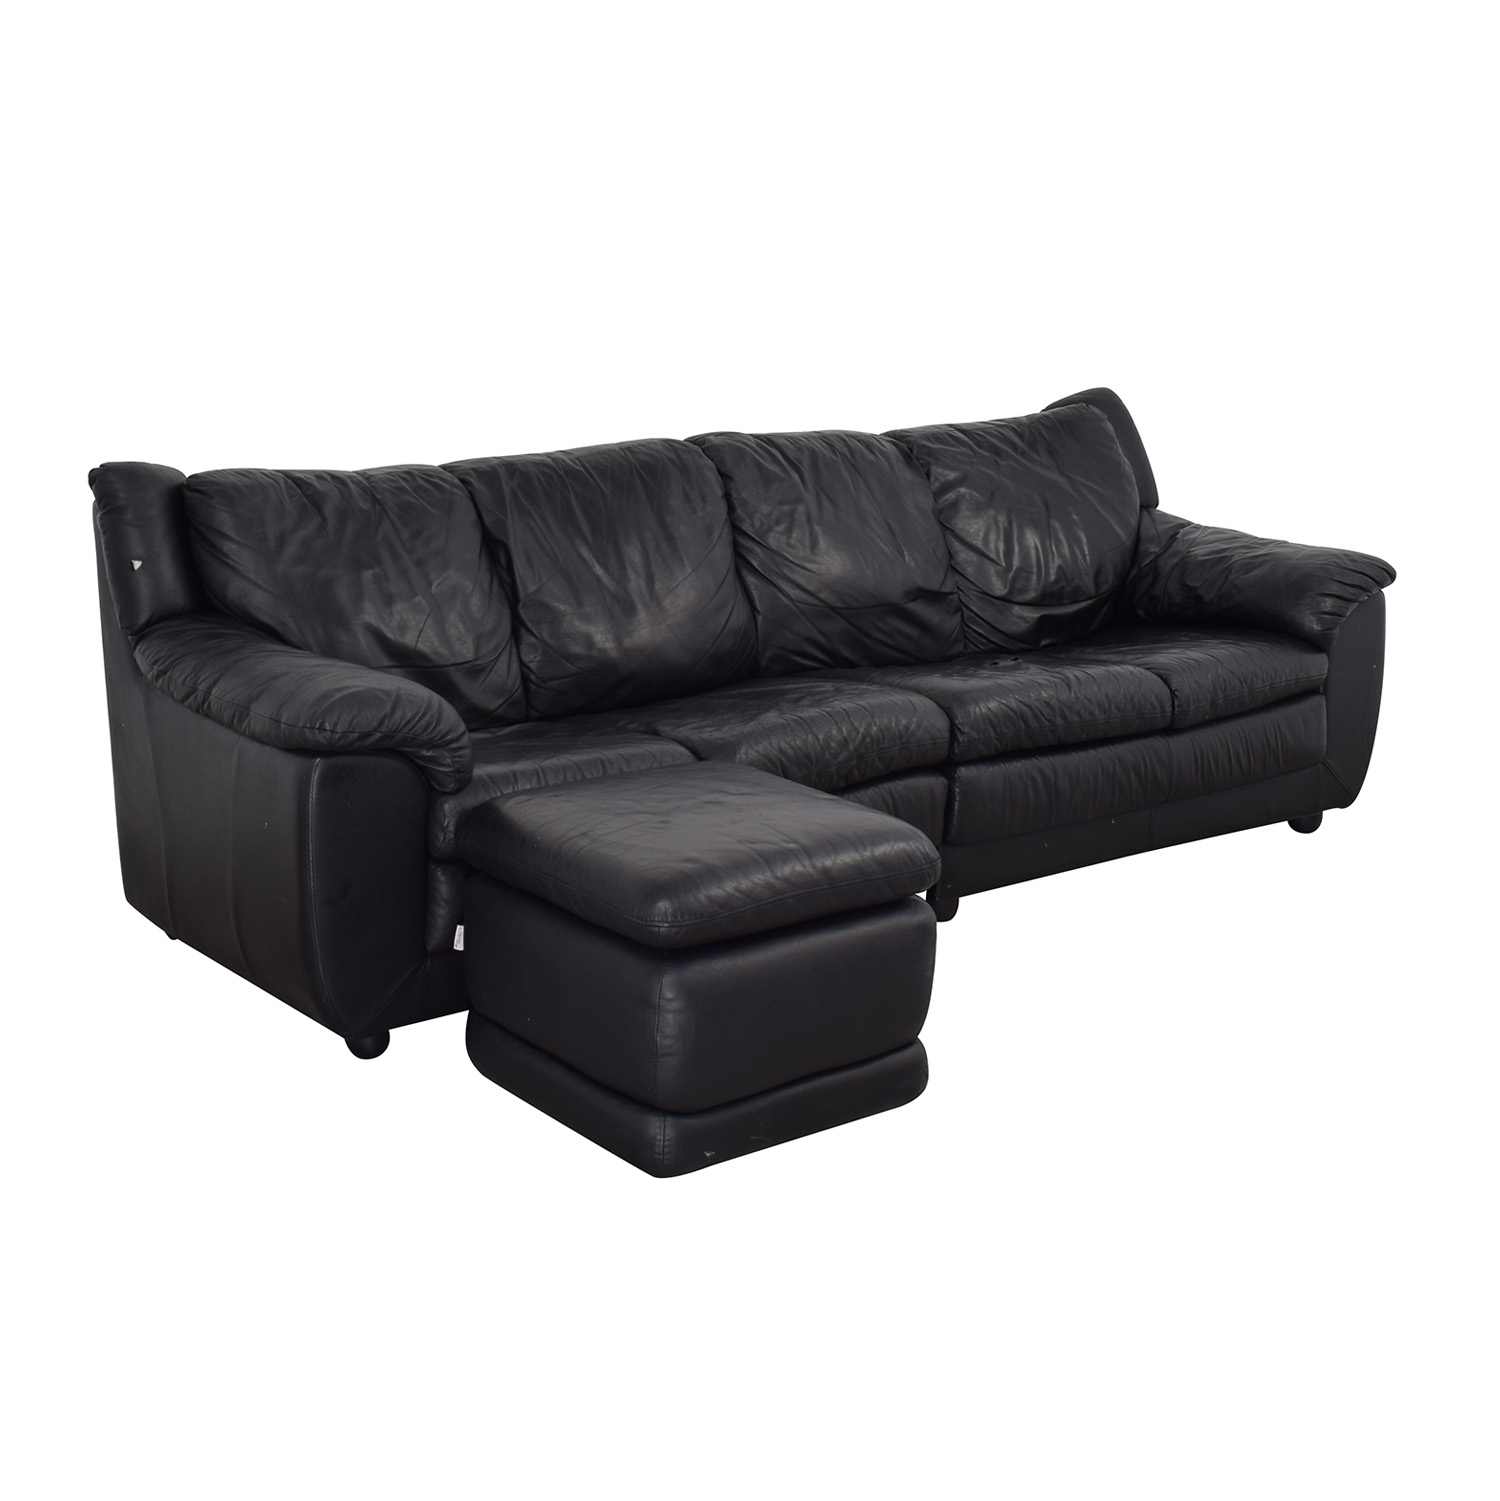 Nicoletti Home Black Four Cushion Couch with Ottoman Nicoletti Home